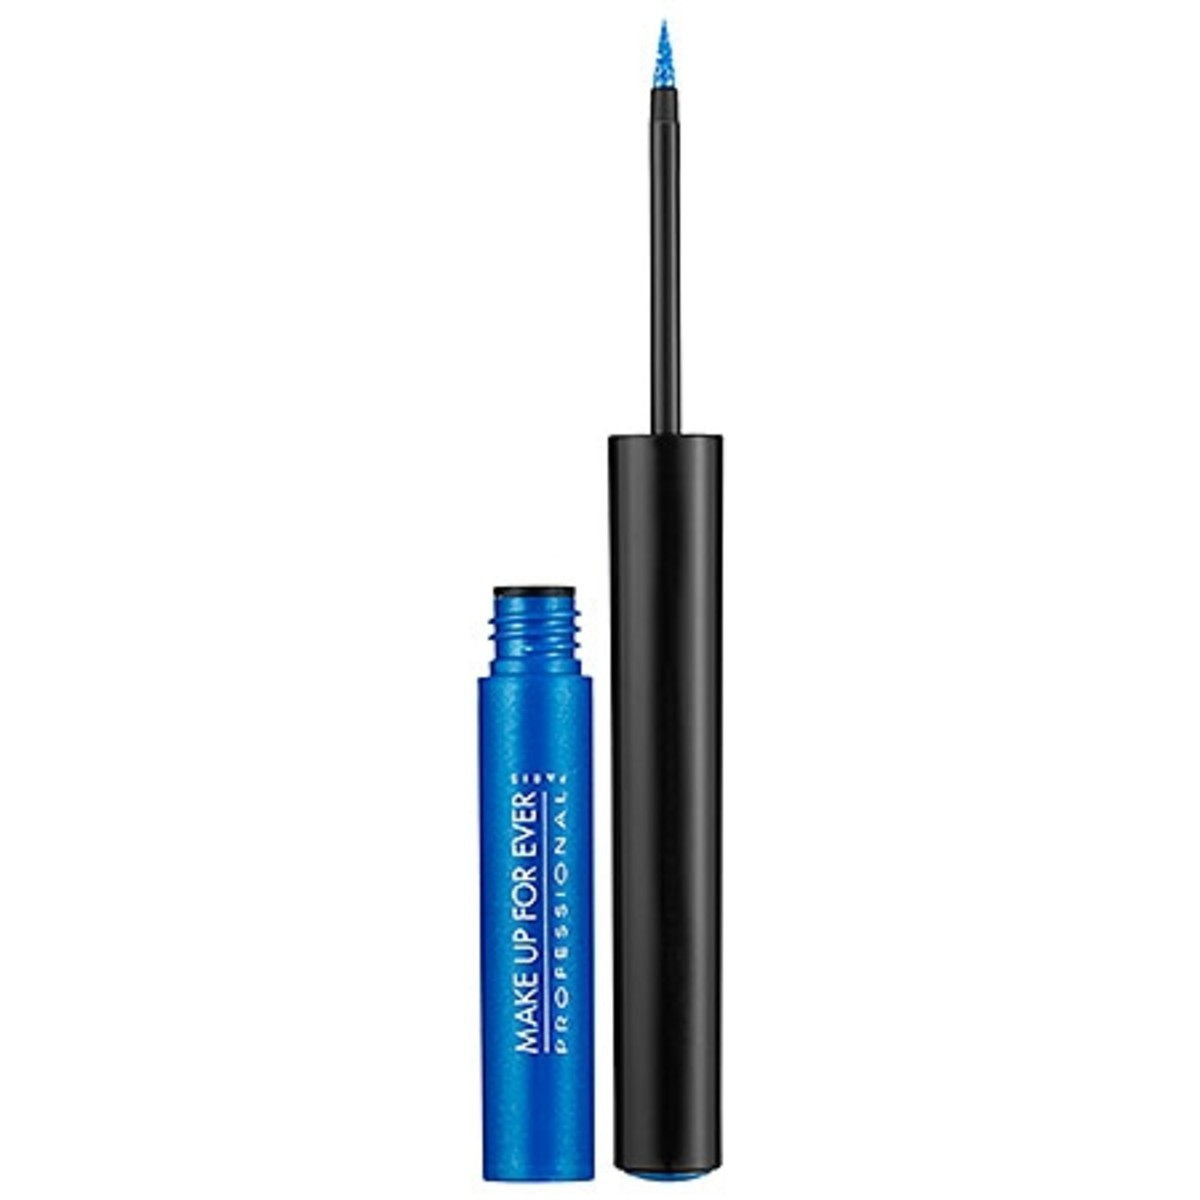 Make Up For Ever Aqua Liner in 5 Diamond Turquoise Blue